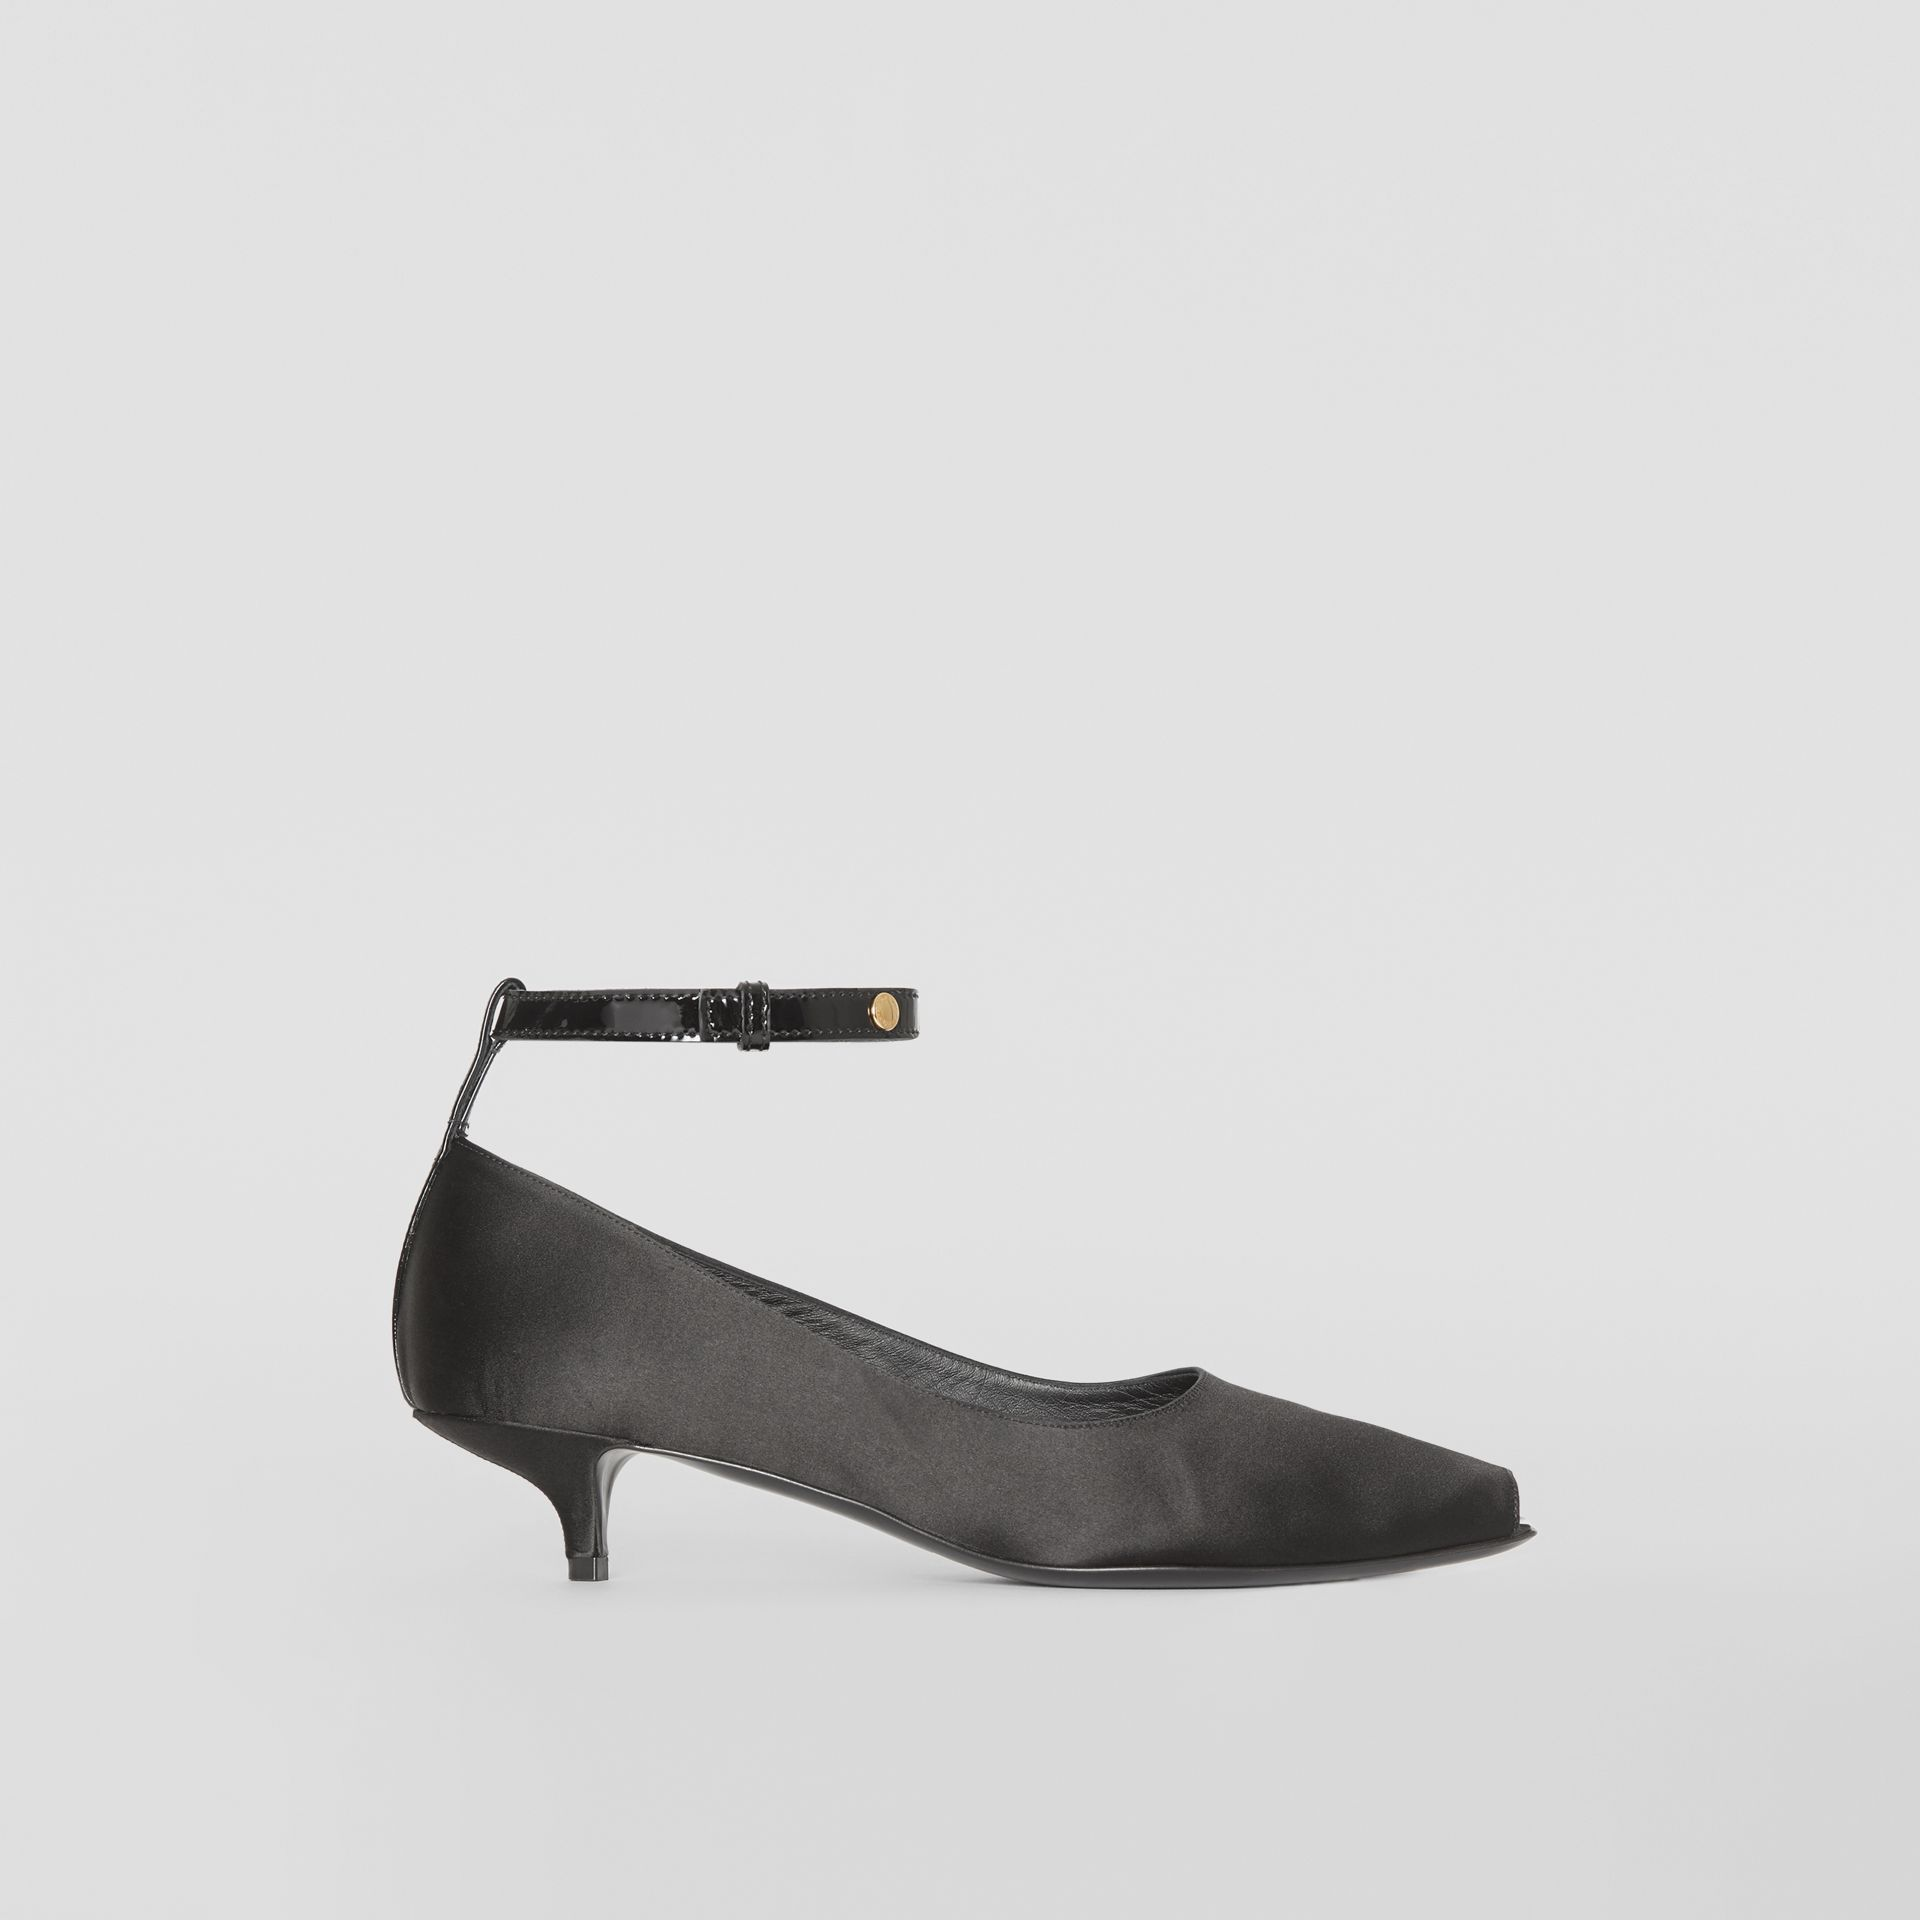 Satin Peep-toe Kitten-heel Pumps in Black - Women | Burberry - gallery image 5